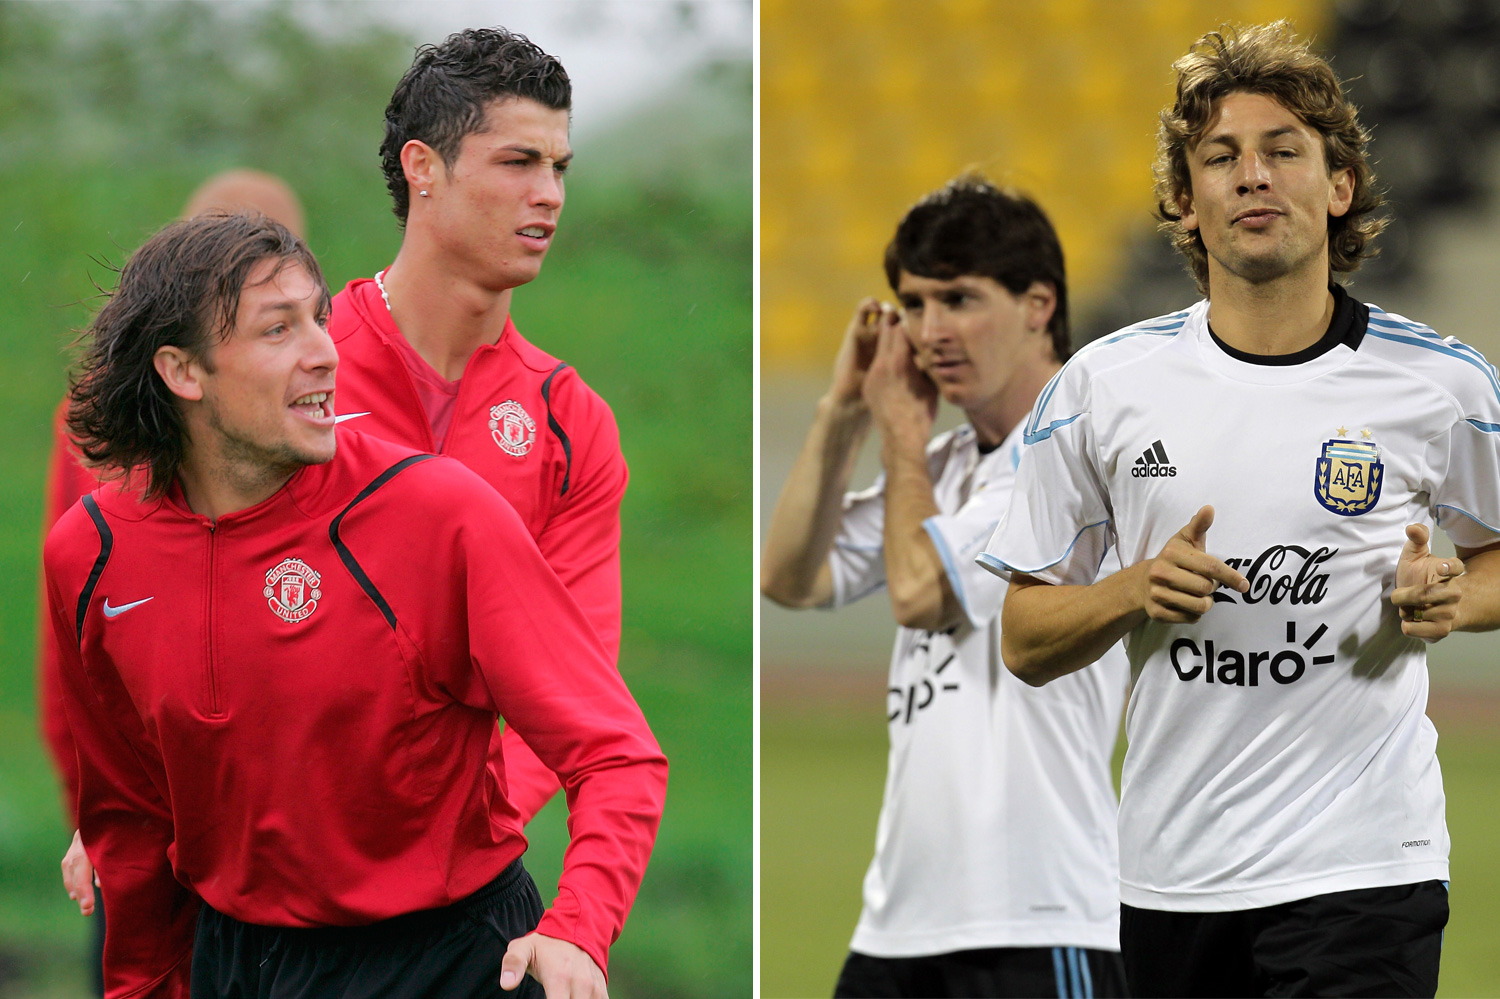 Heinze was the only star to play alongside both who opted for Ronaldo